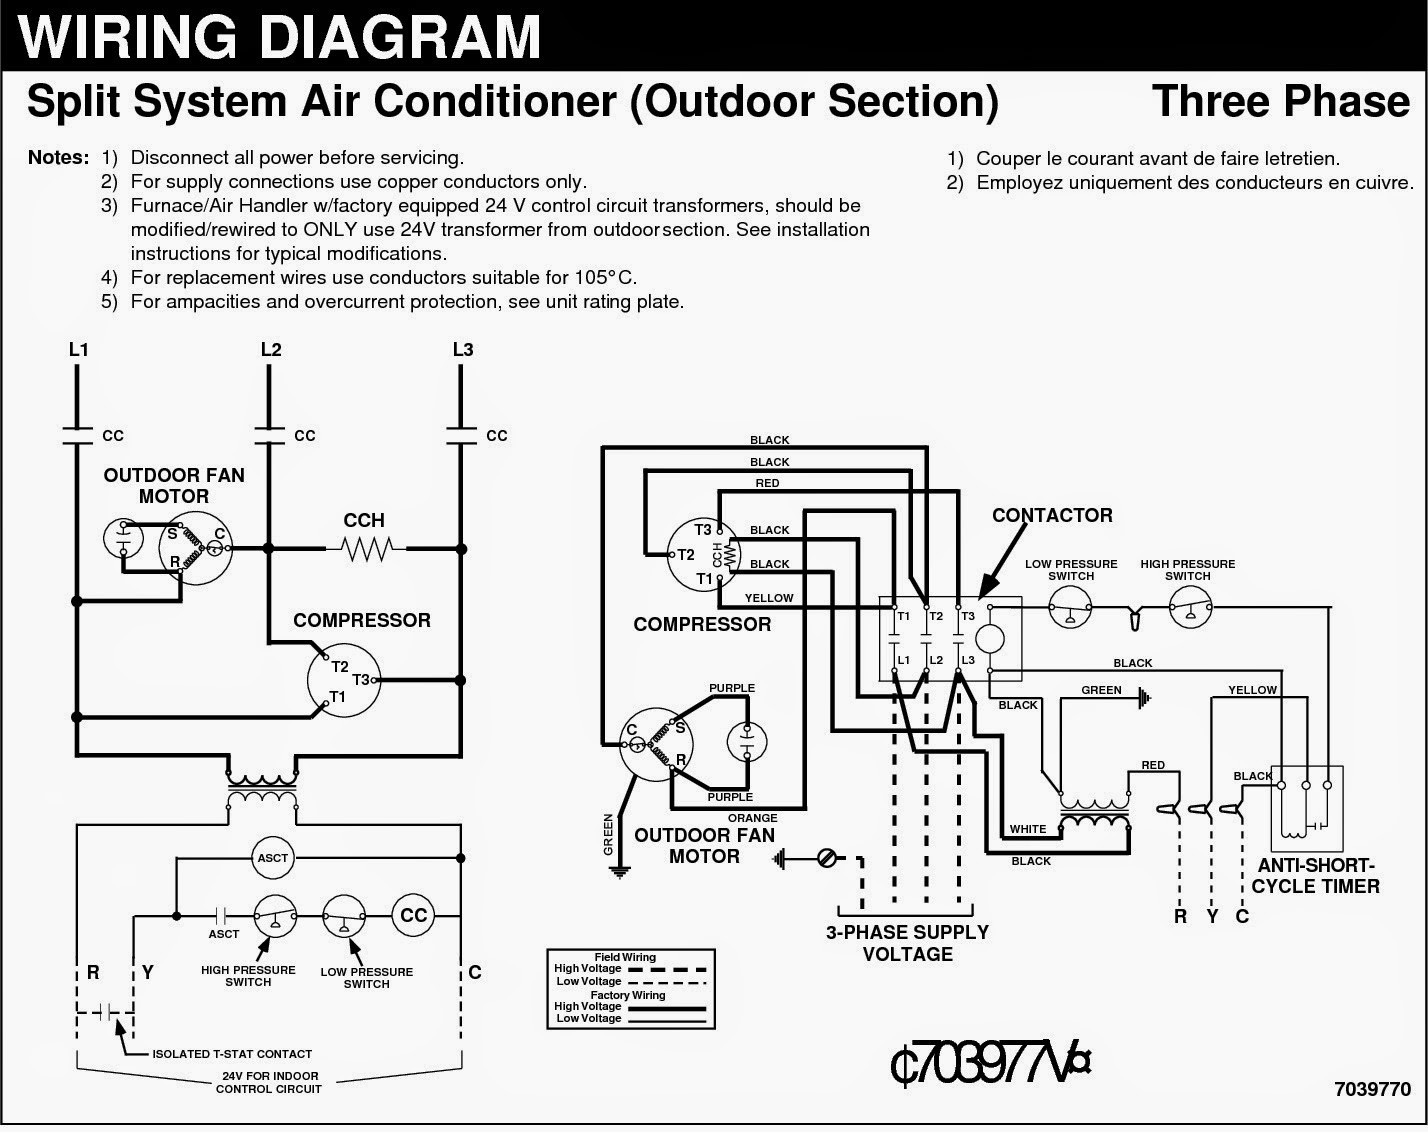 Nema 6 50 Wiring Diagram in addition Wiring Sub Panel Diagram furthermore Wiring 6 Pin Trailer Plug in addition Wiring Diagram For Ford Alternator furthermore in. on 4 wire 220 plug wiring